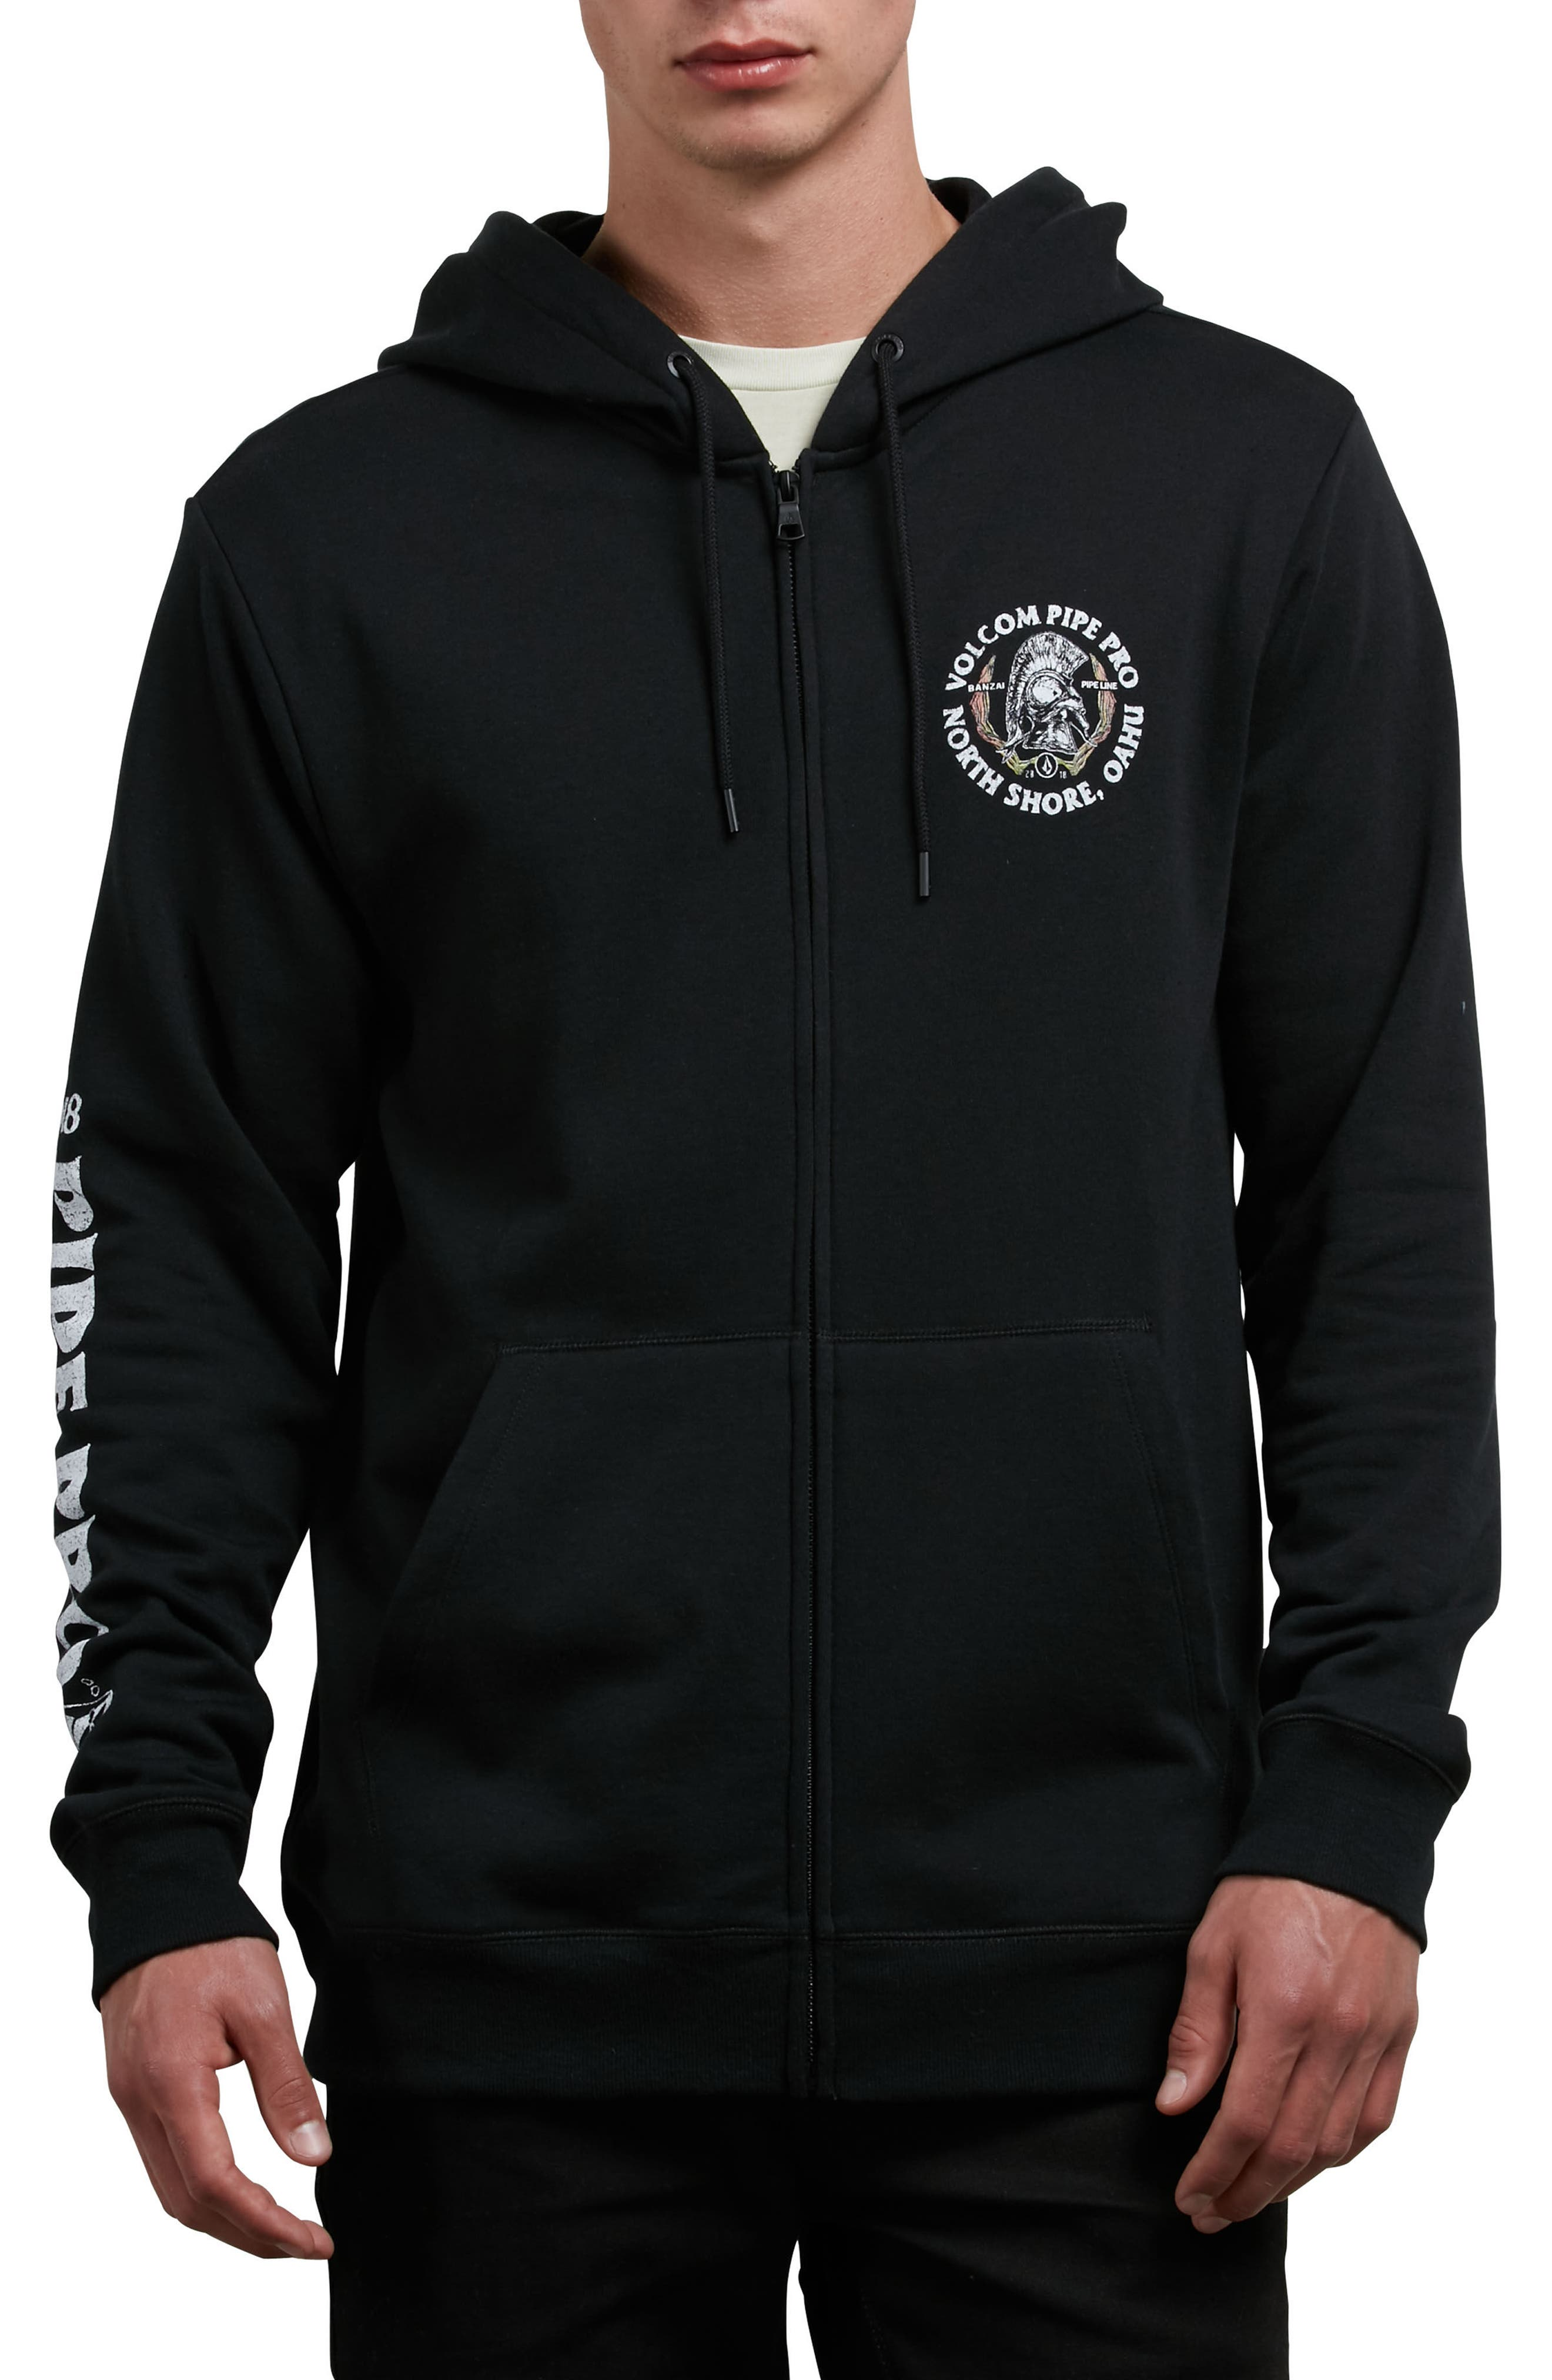 Volcom Pipe Pro Seal Graphic Zip Hoodie